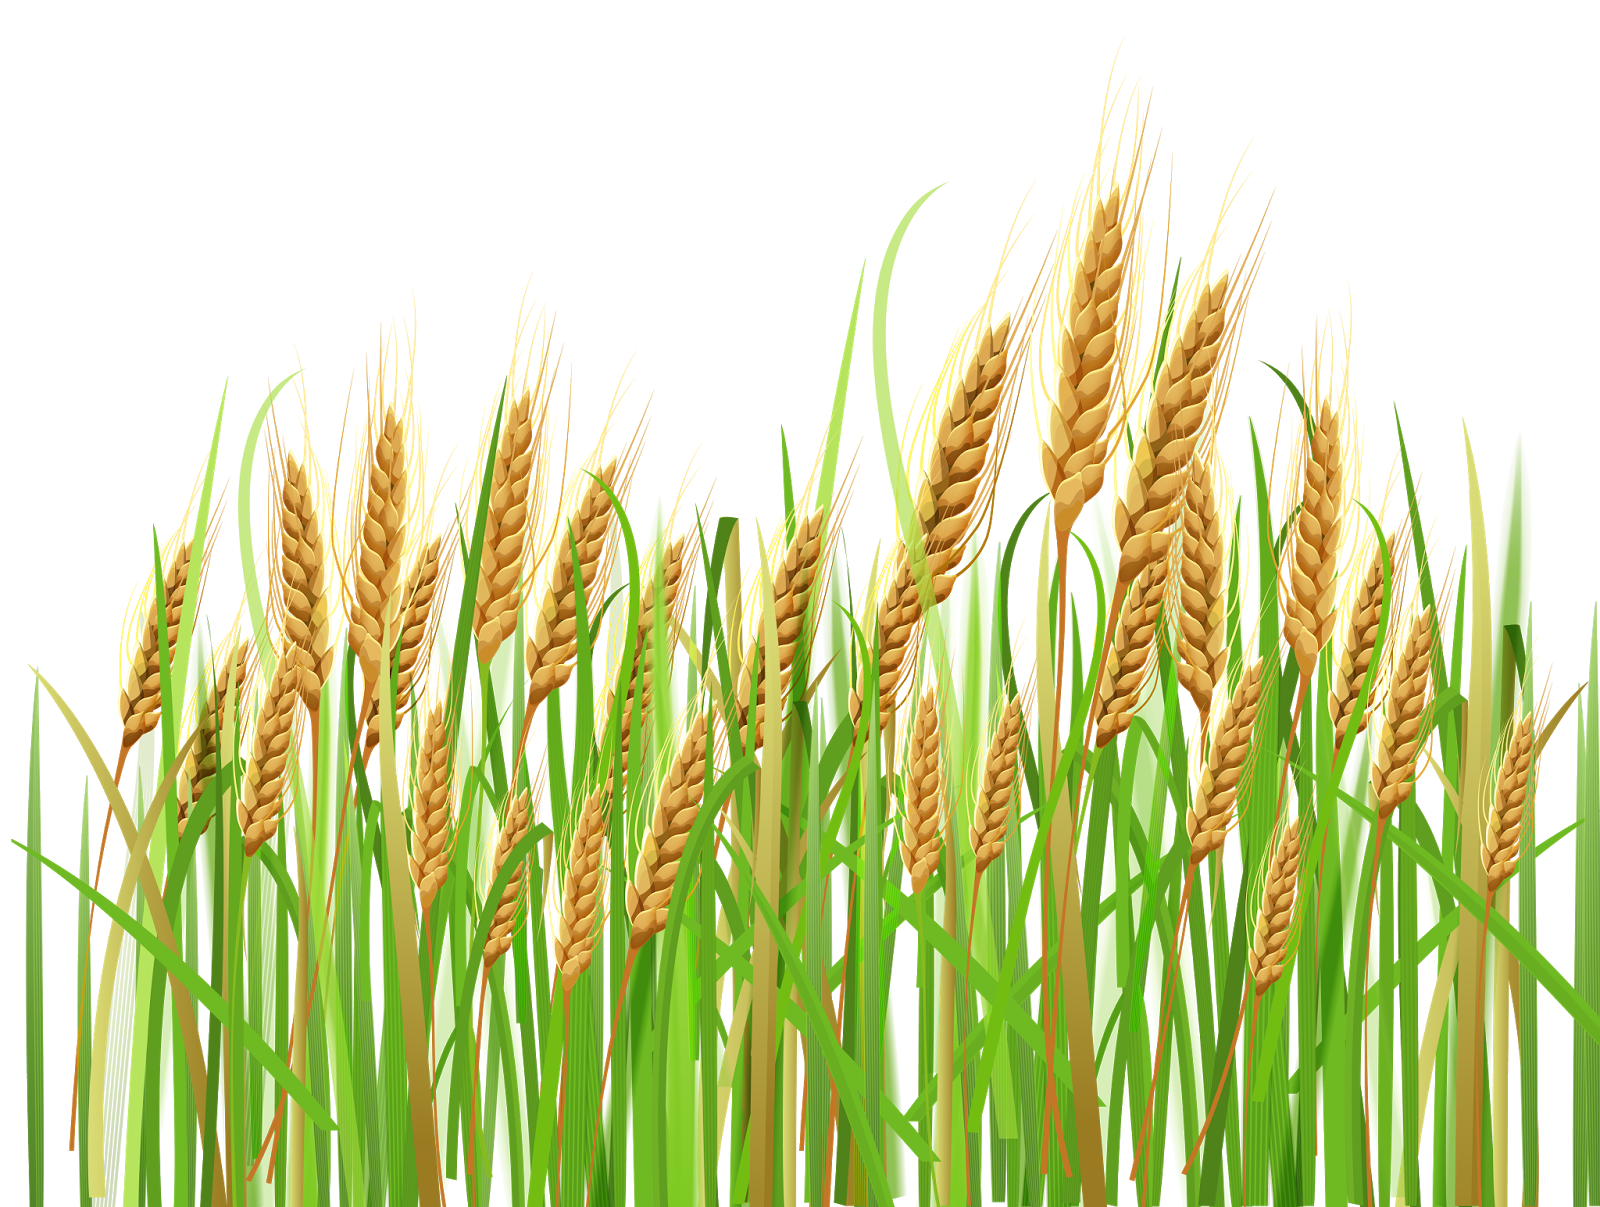 Clipart grass ryegrass. Barley prices closed higher